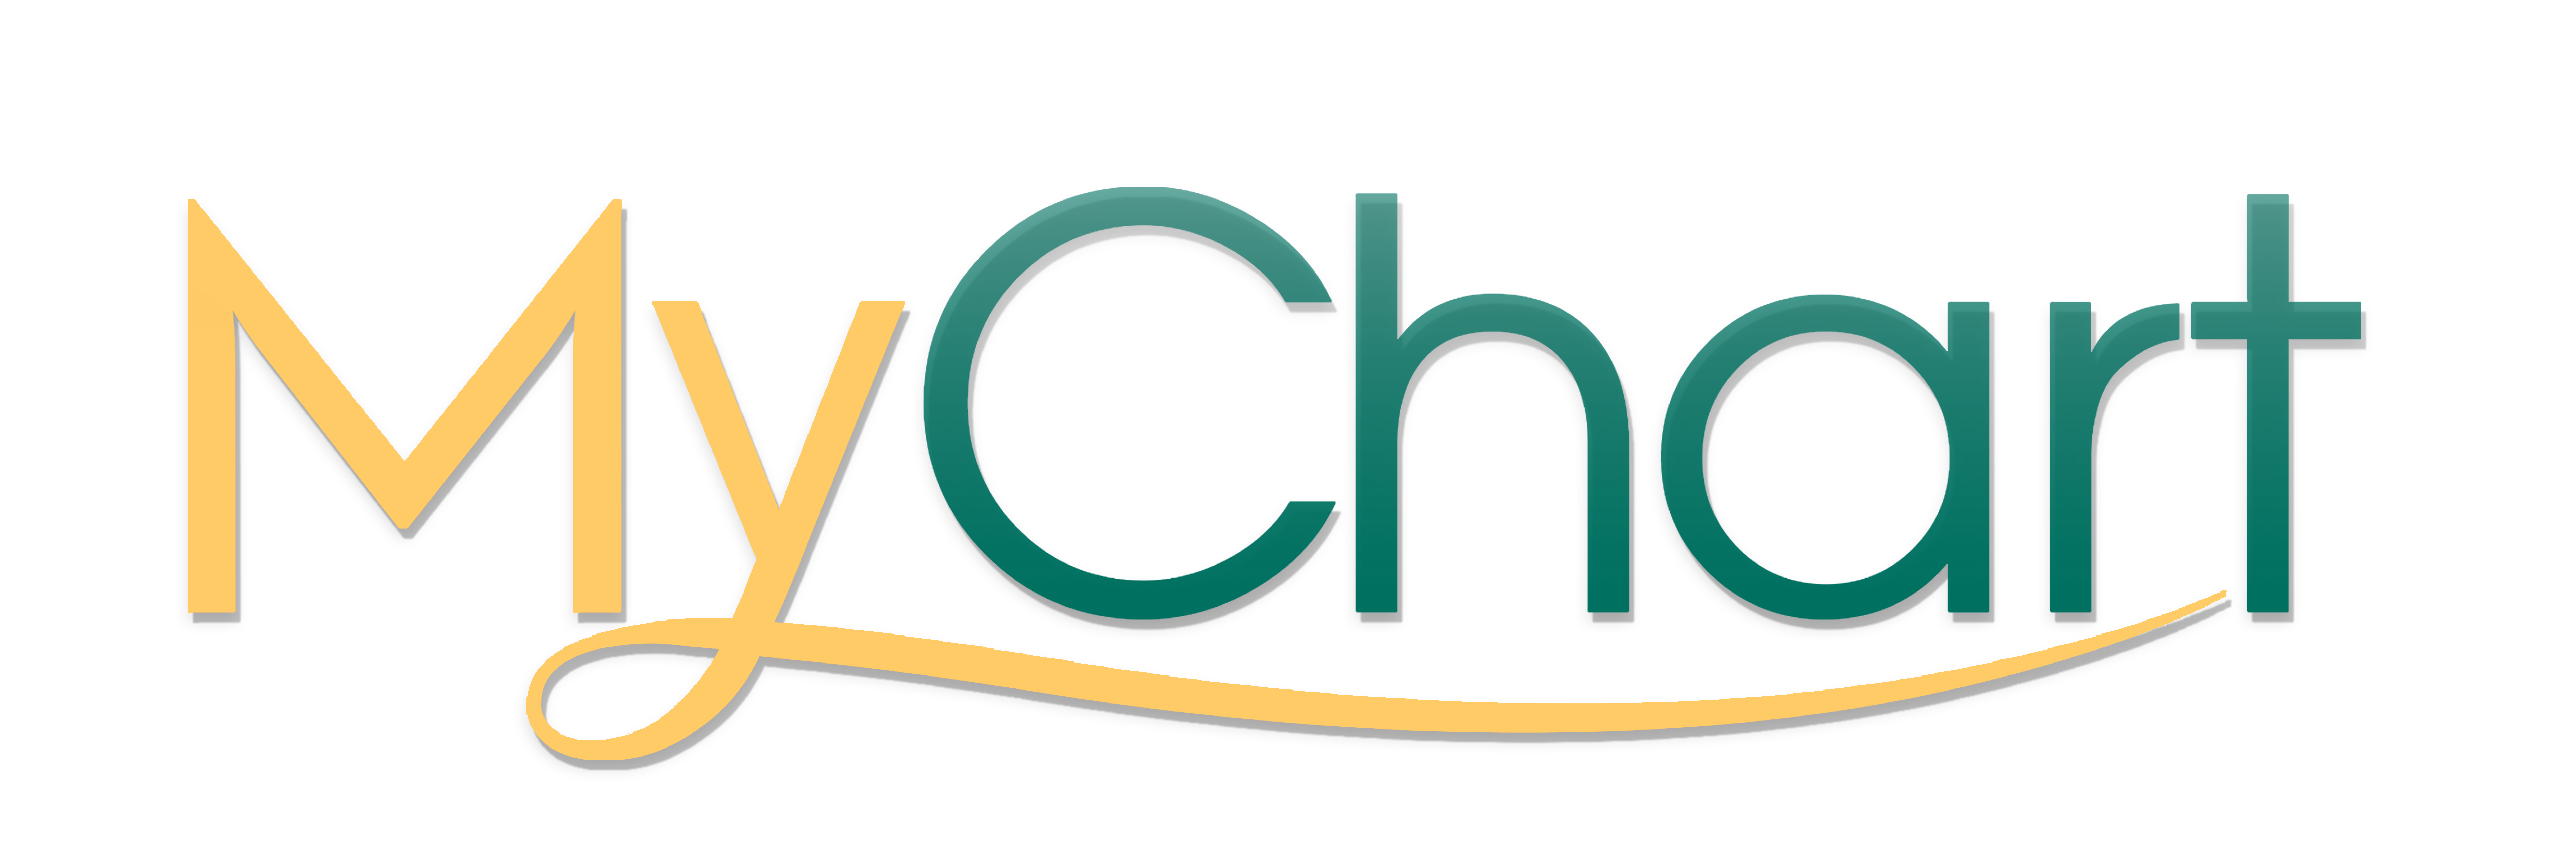 Mychart_yellowgreen_V1_greengradient_logo